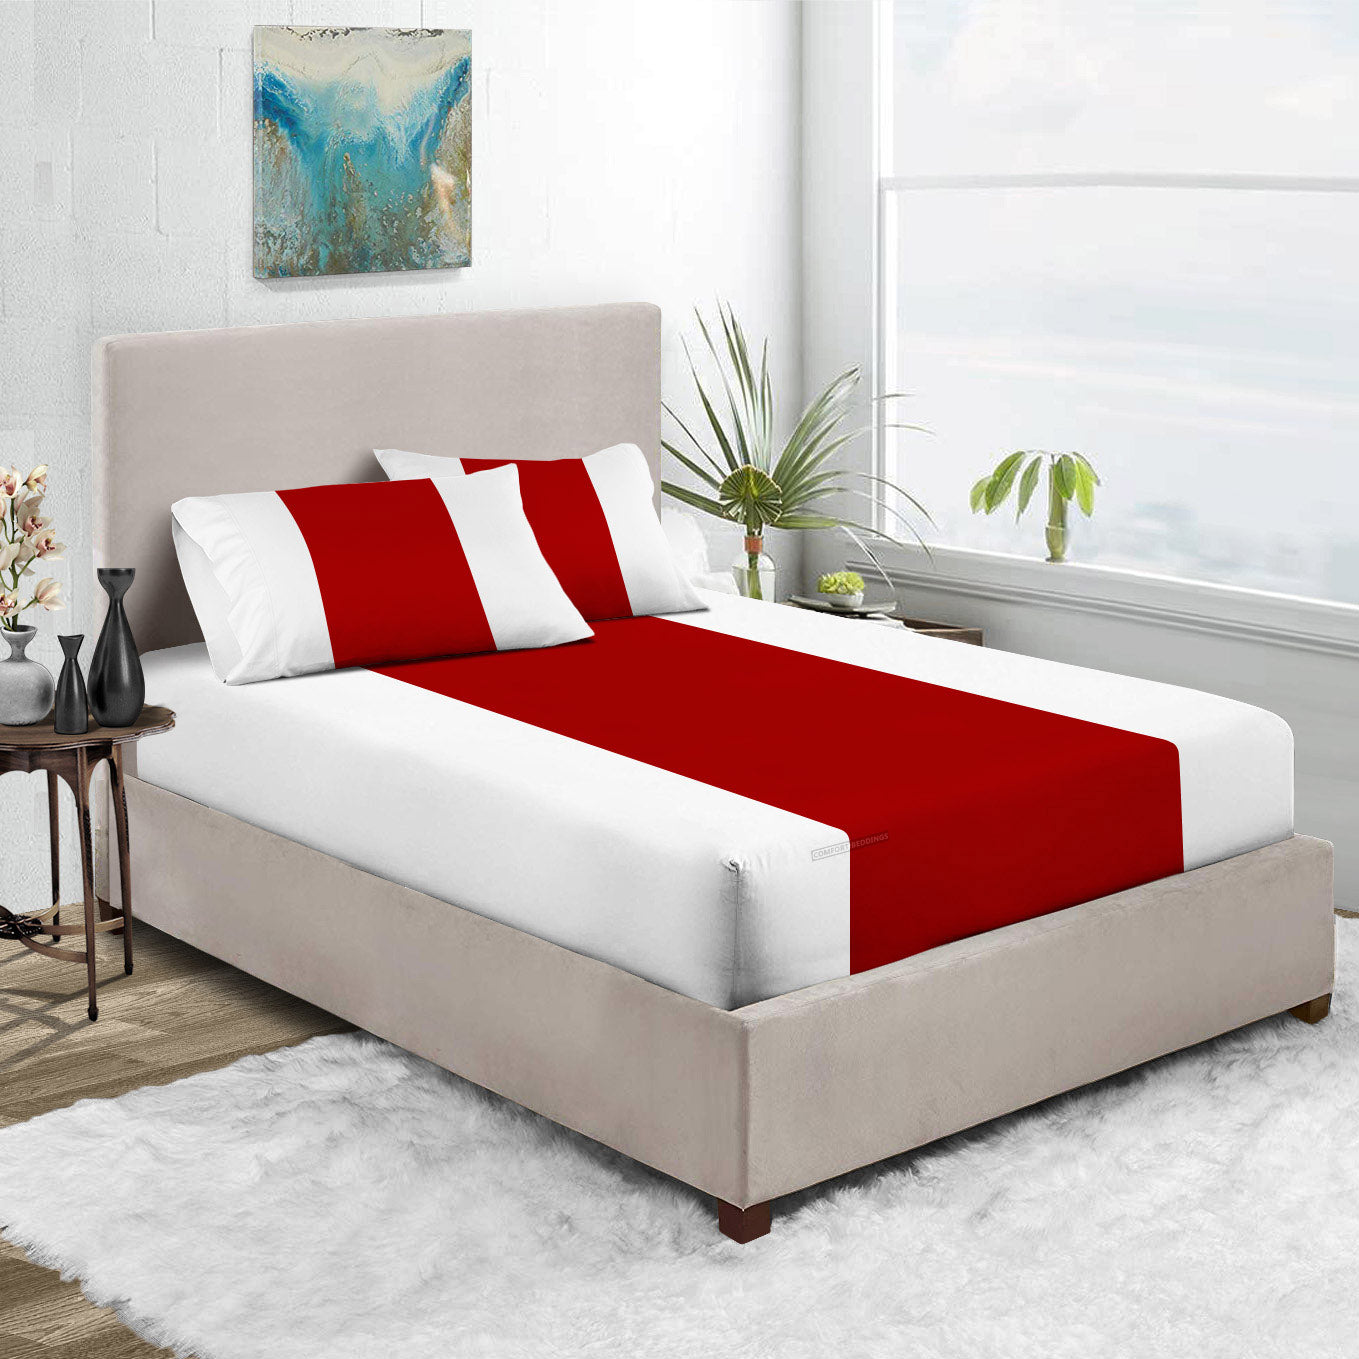 Luxury Blood Red - White Contrast Fitted Sheet